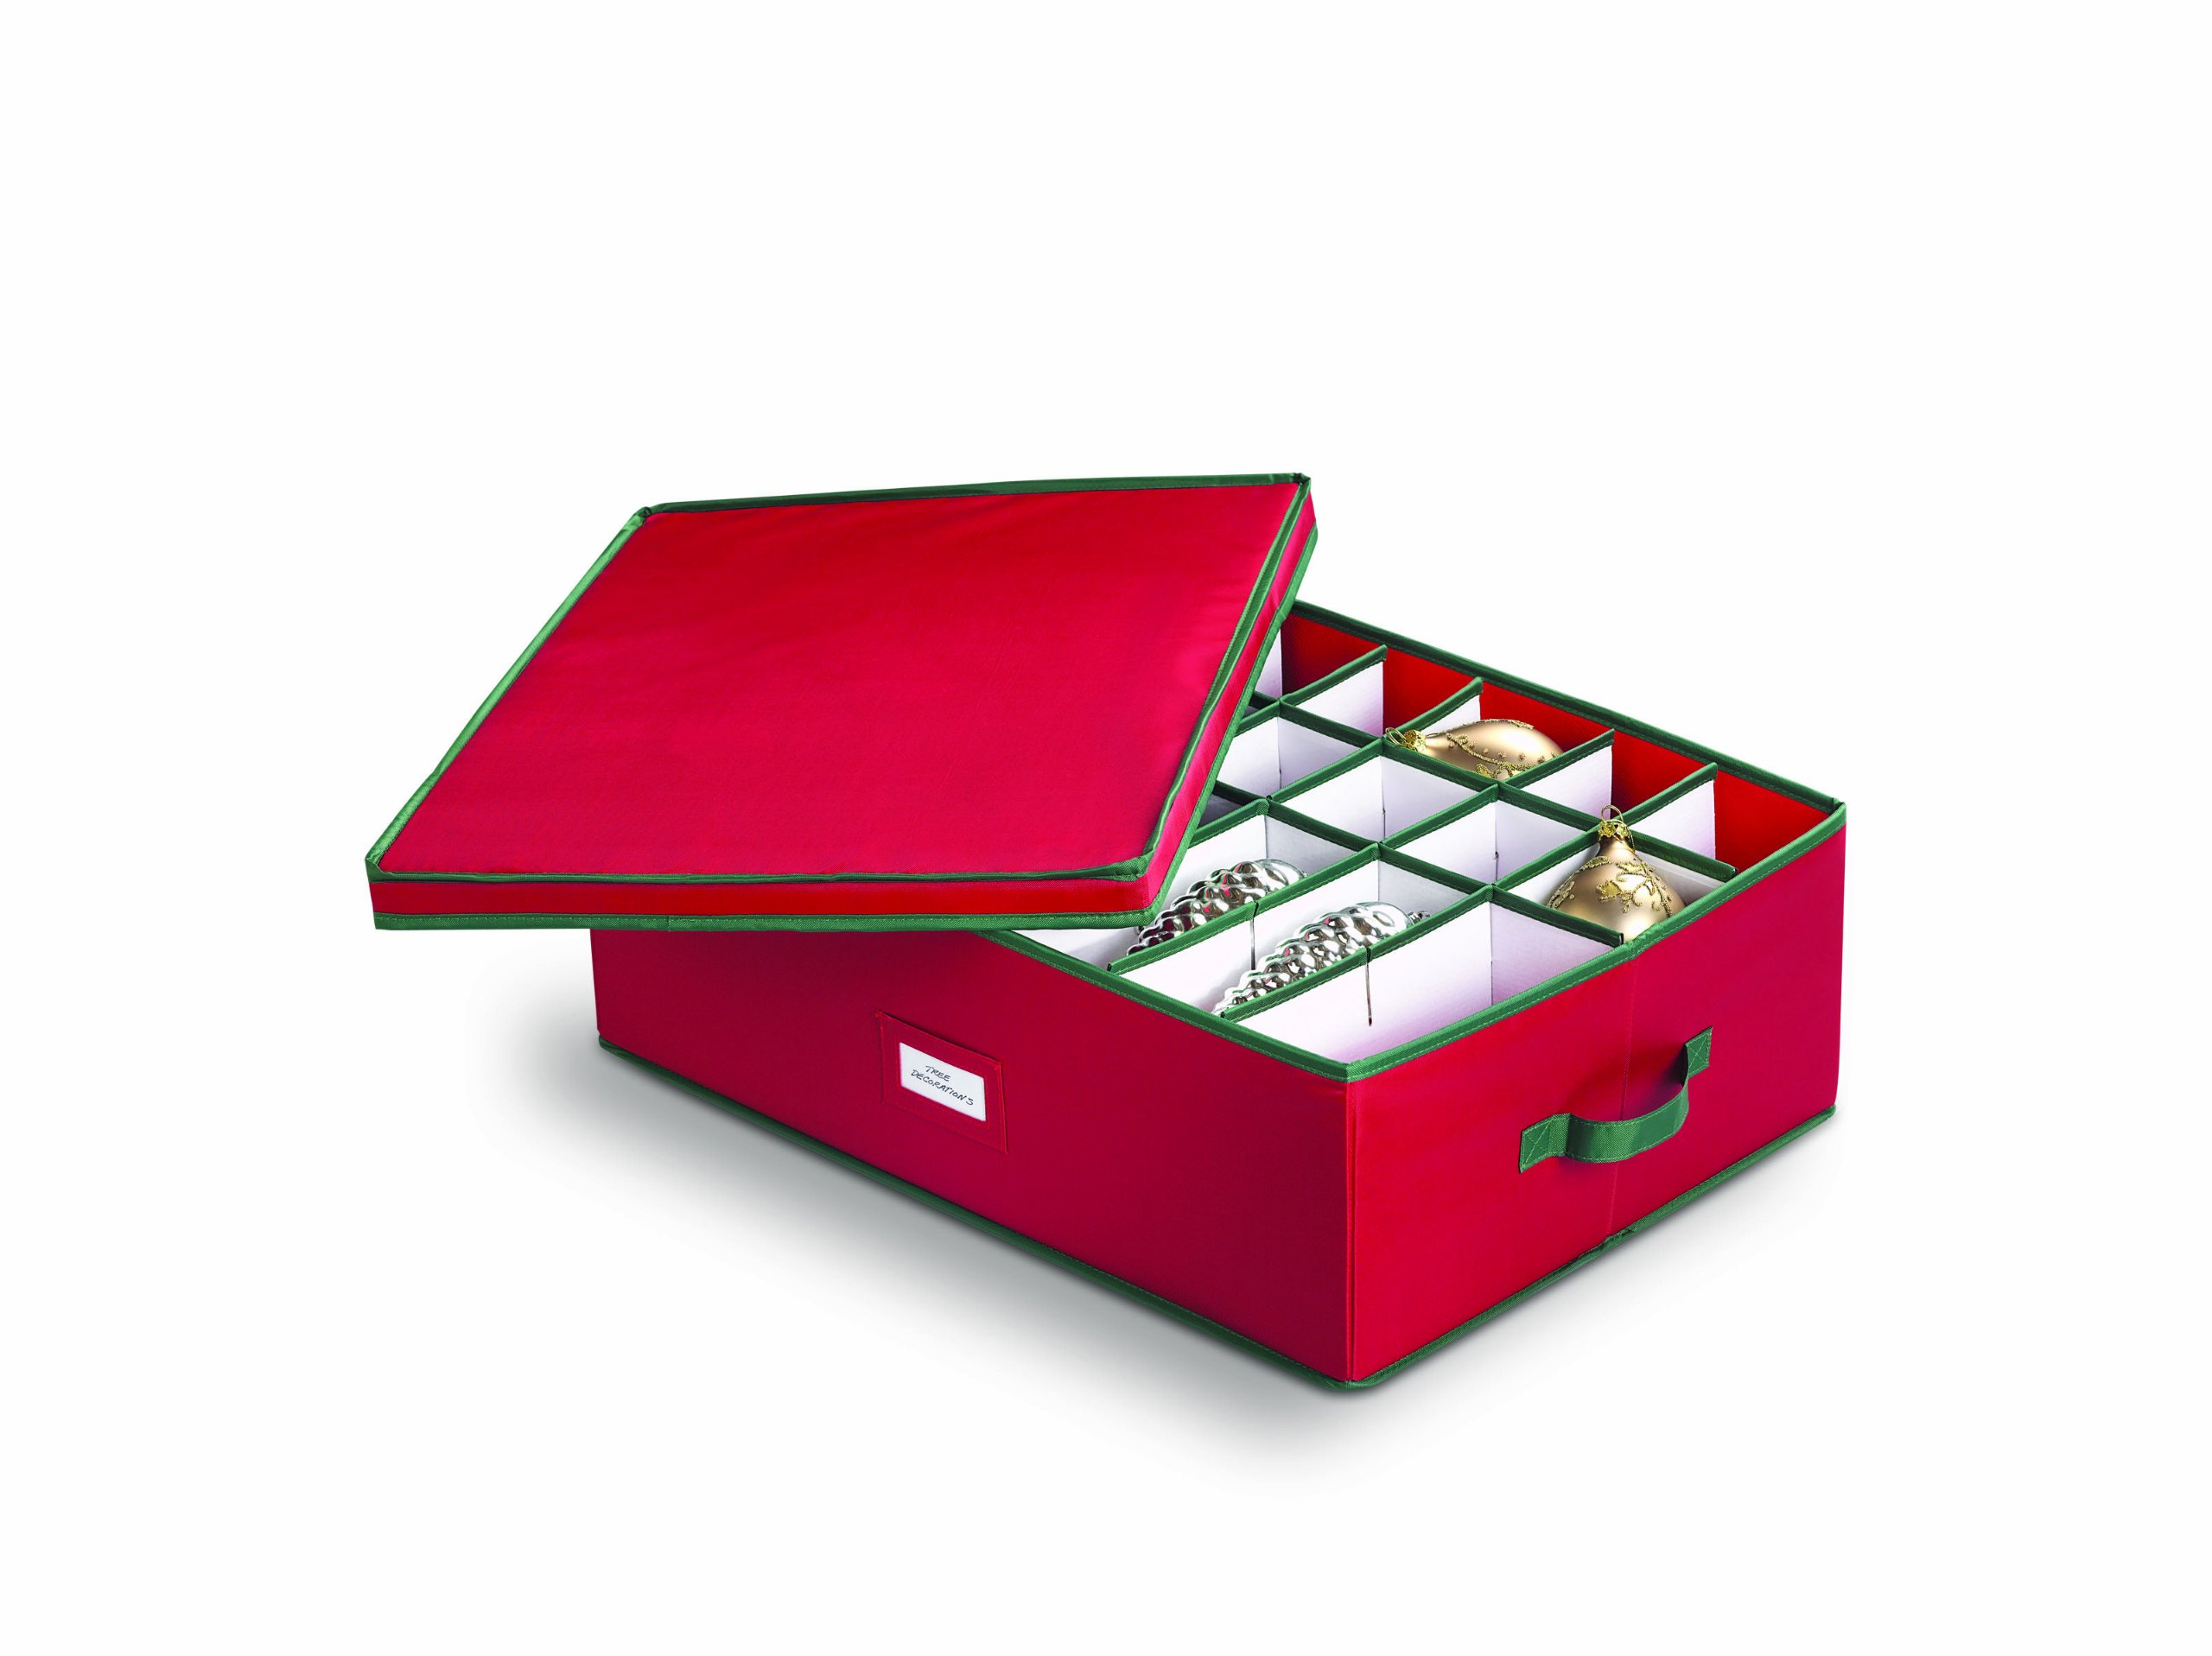 HOMZ 5831005 Heirloom-Ornament Storage Box, Large, Holiday Red